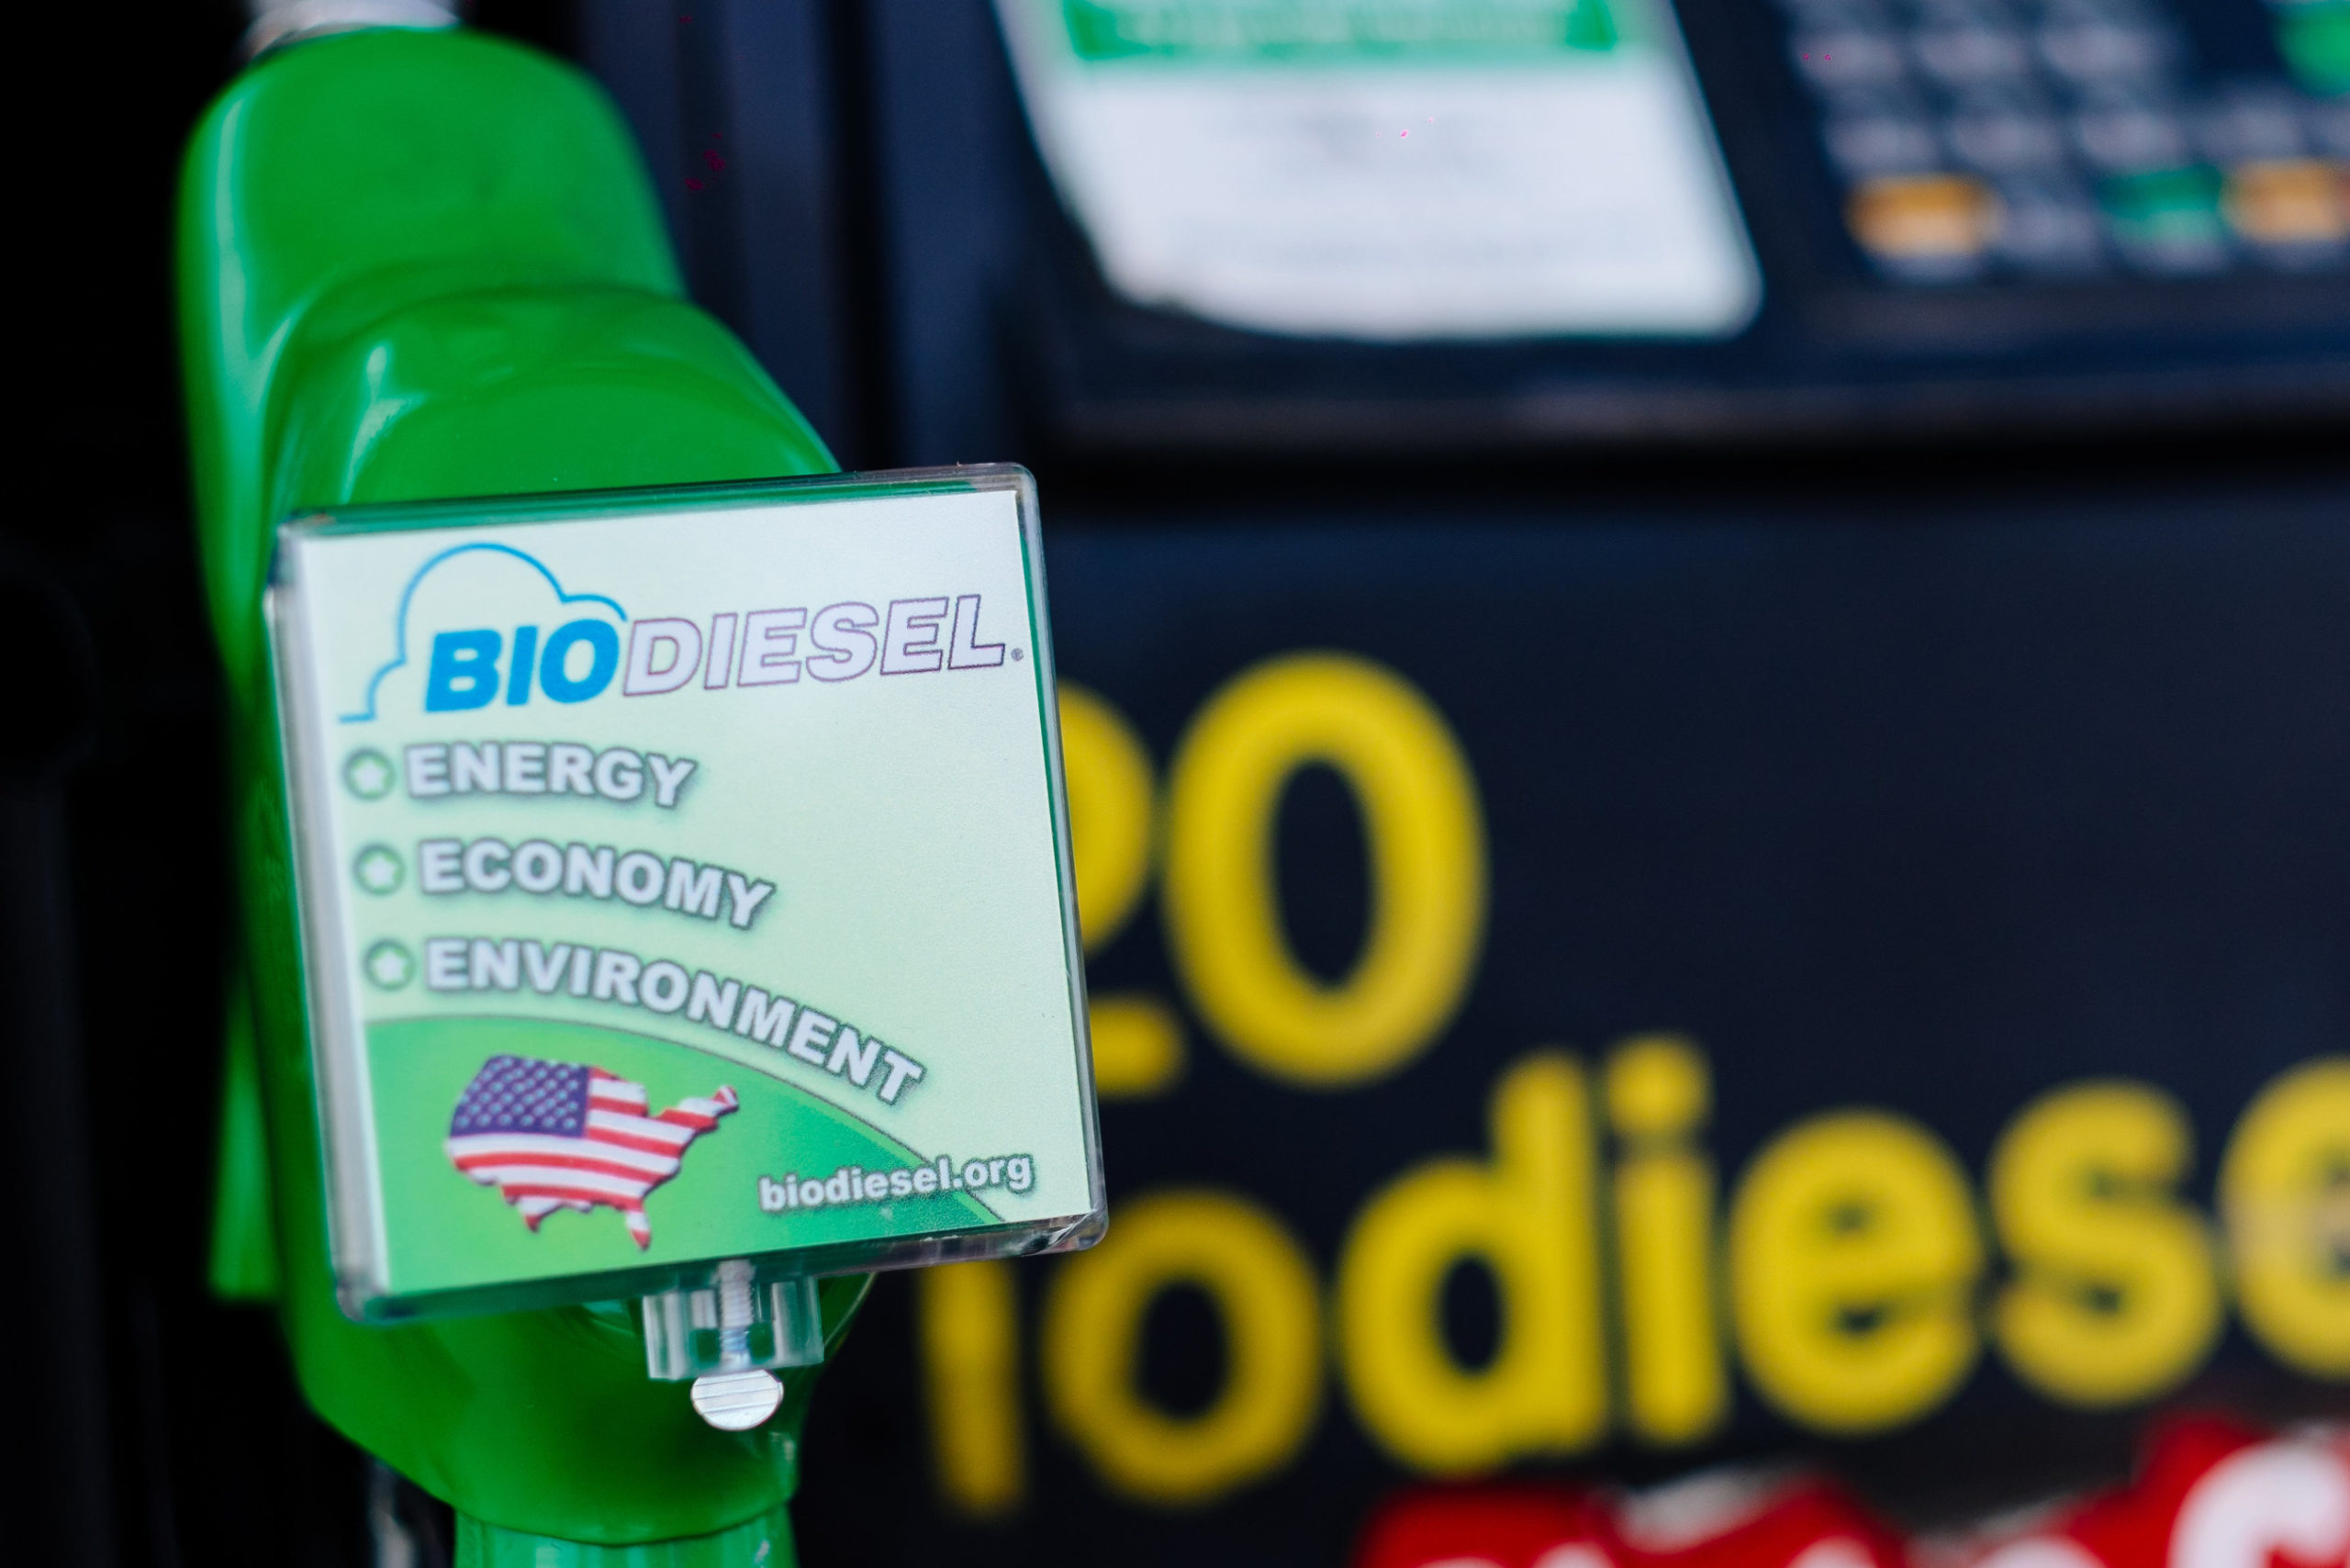 California has cleared the way for storing biodiesel blends of up to 20 percent (B20) in underground storage tanks, removing the